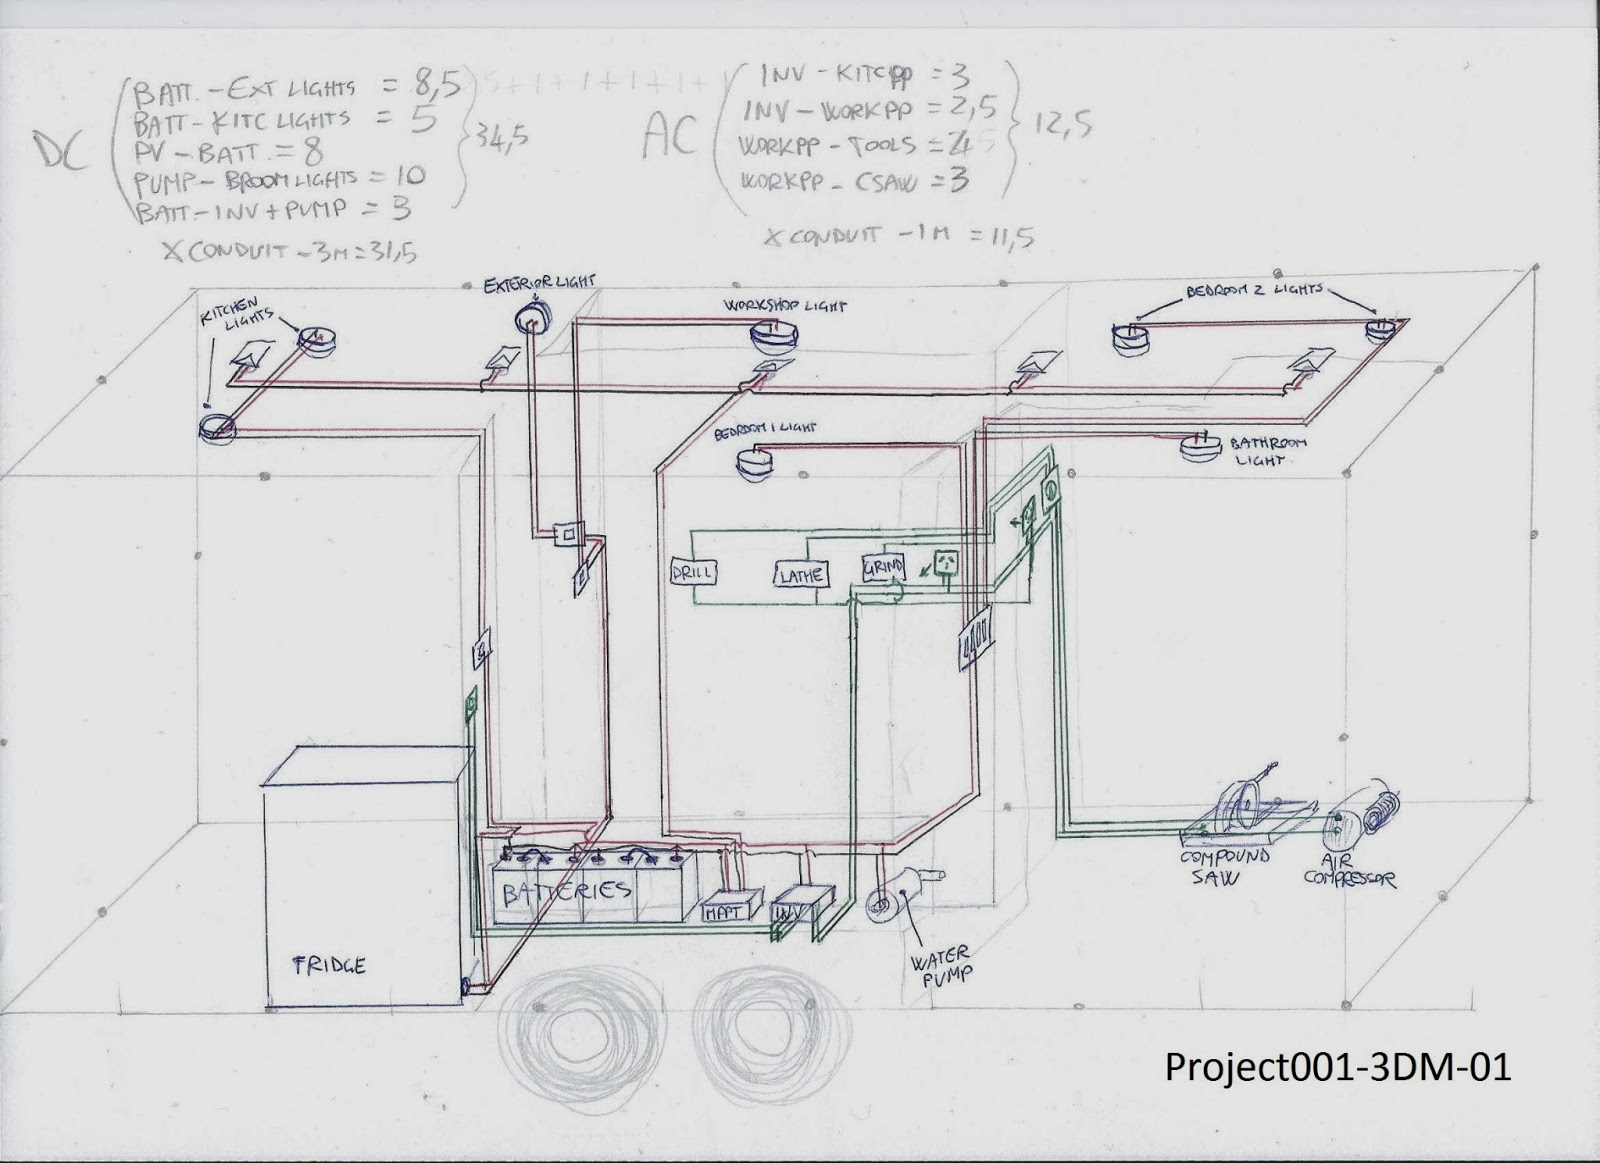 ... schematic accutrac brake controller wiring diagram efcaviation com  kubota l2900 wiring diagram at cita.asia